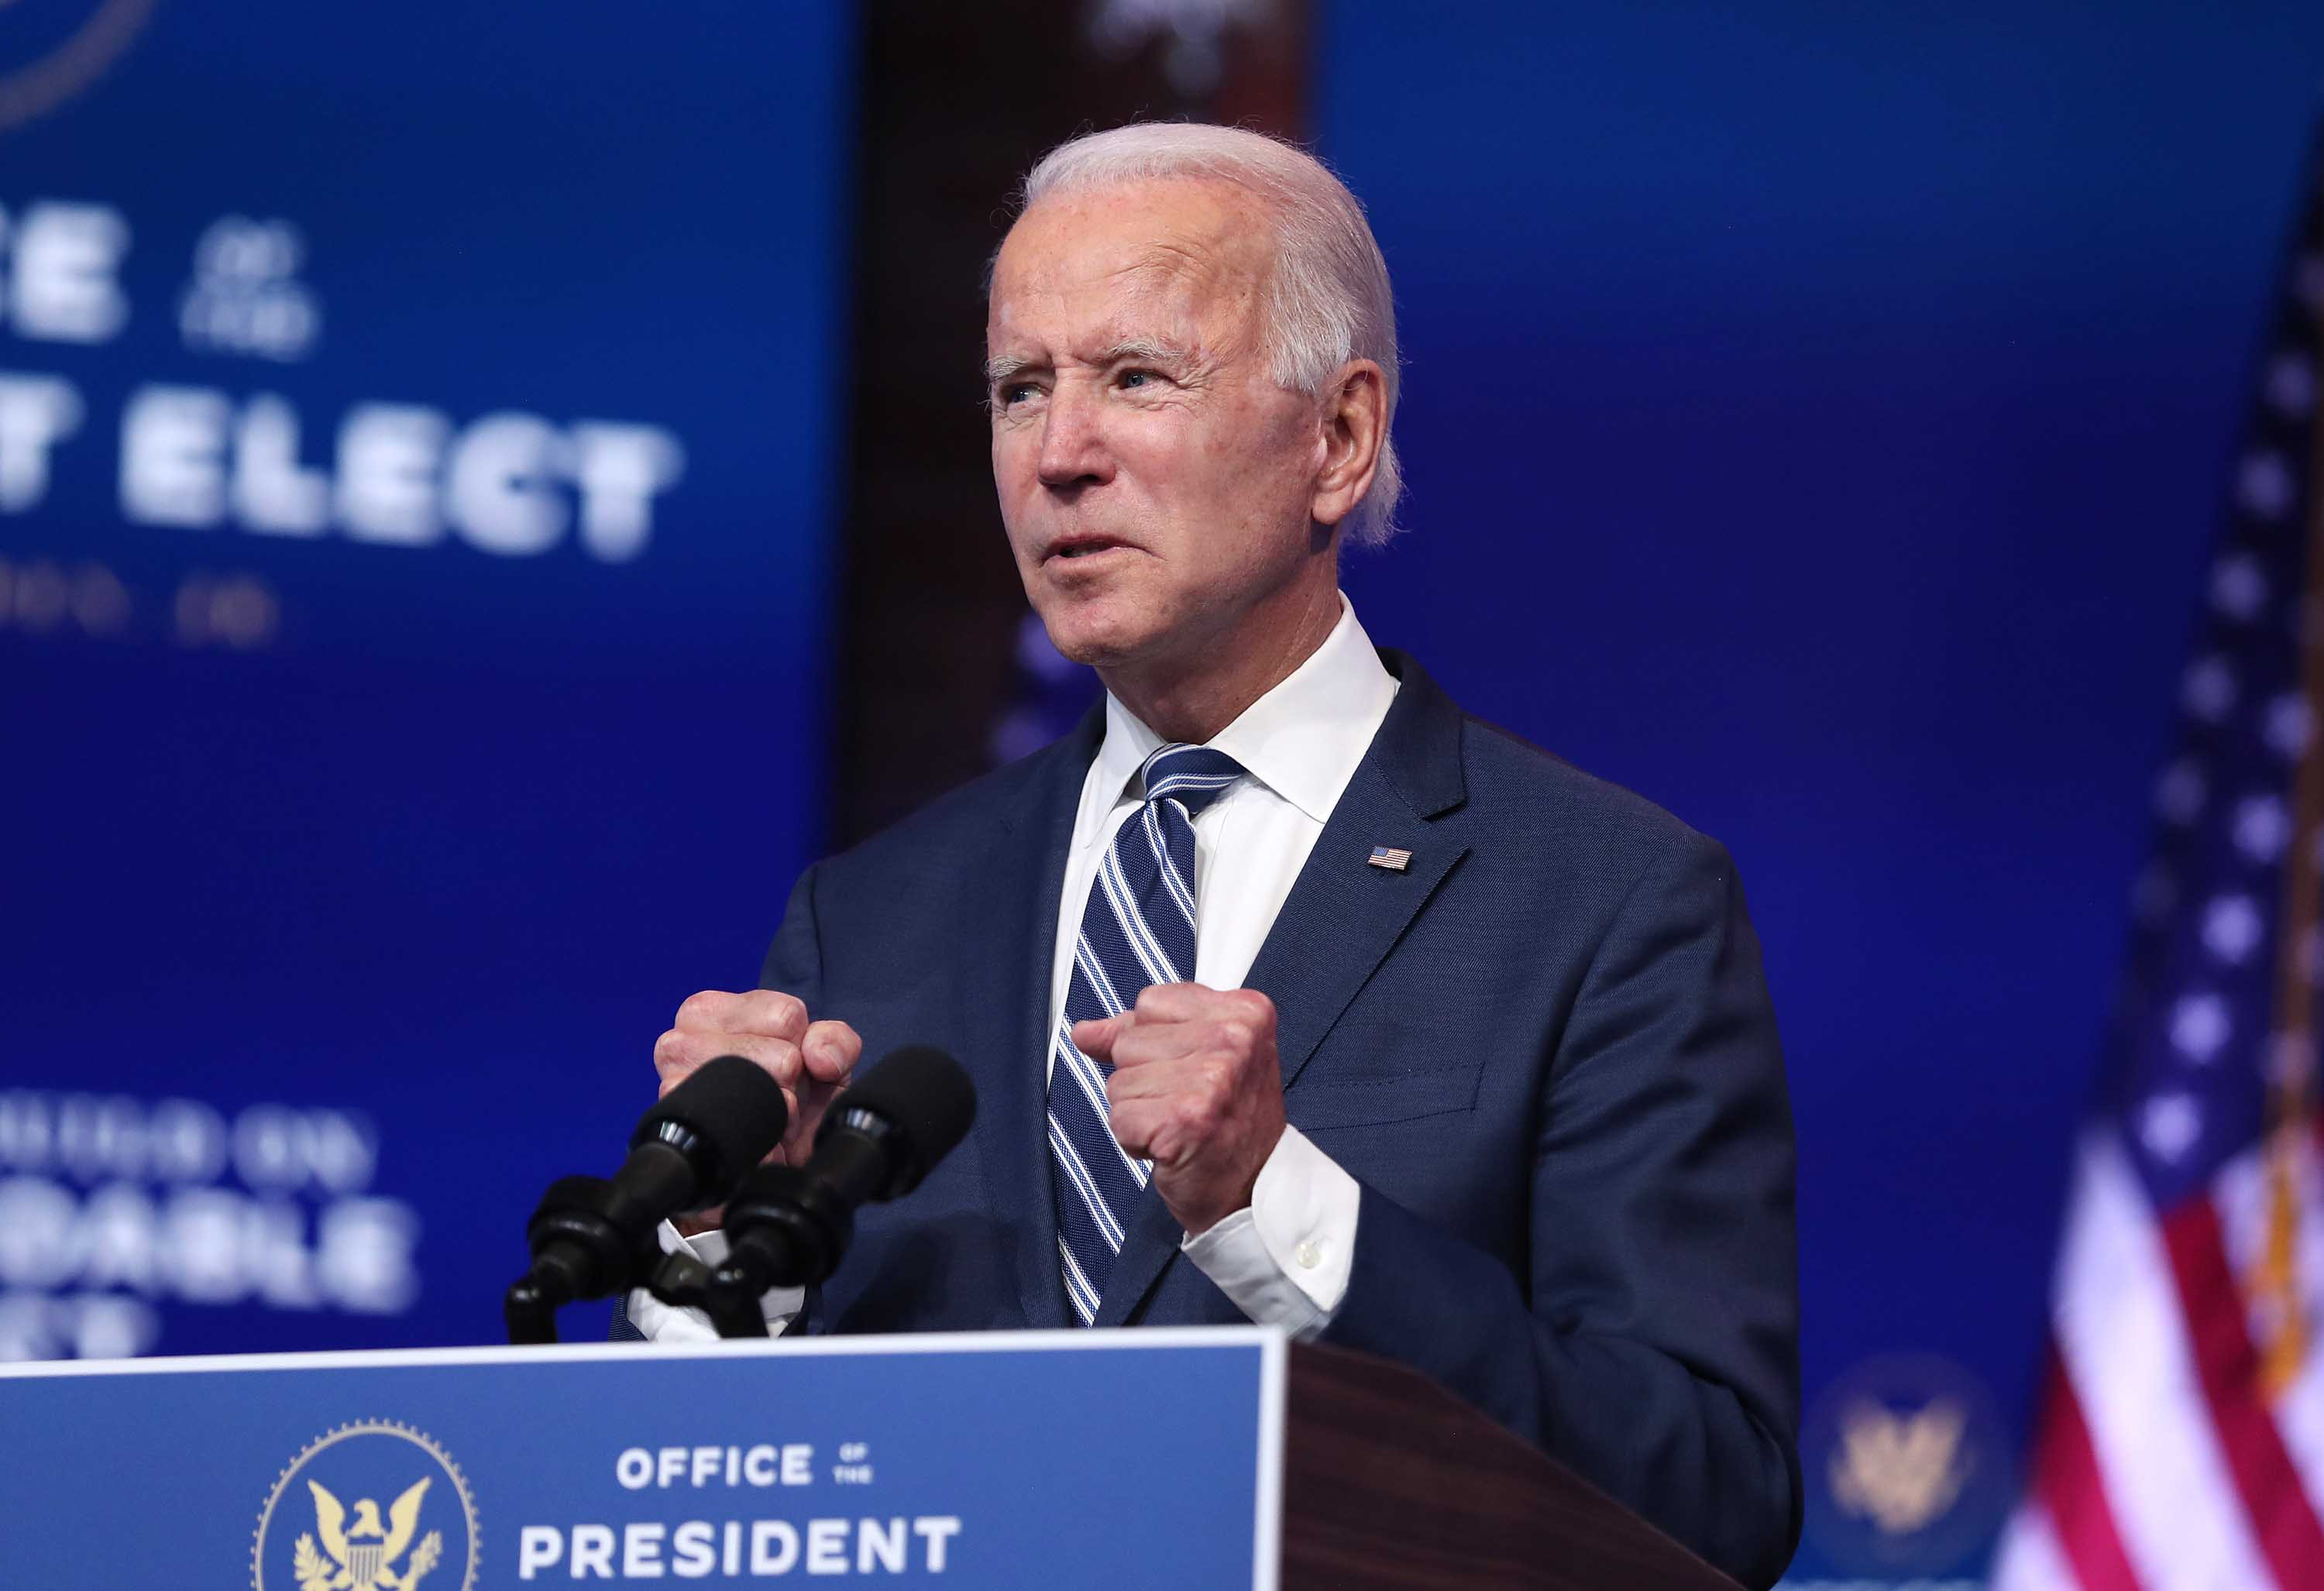 U.S. President-elect Joe Biden addresses the media about the Trump Administration's lawsuit to overturn the Affordable Care Act on November 10, at The Queen theater in Wilmington, Delaware.